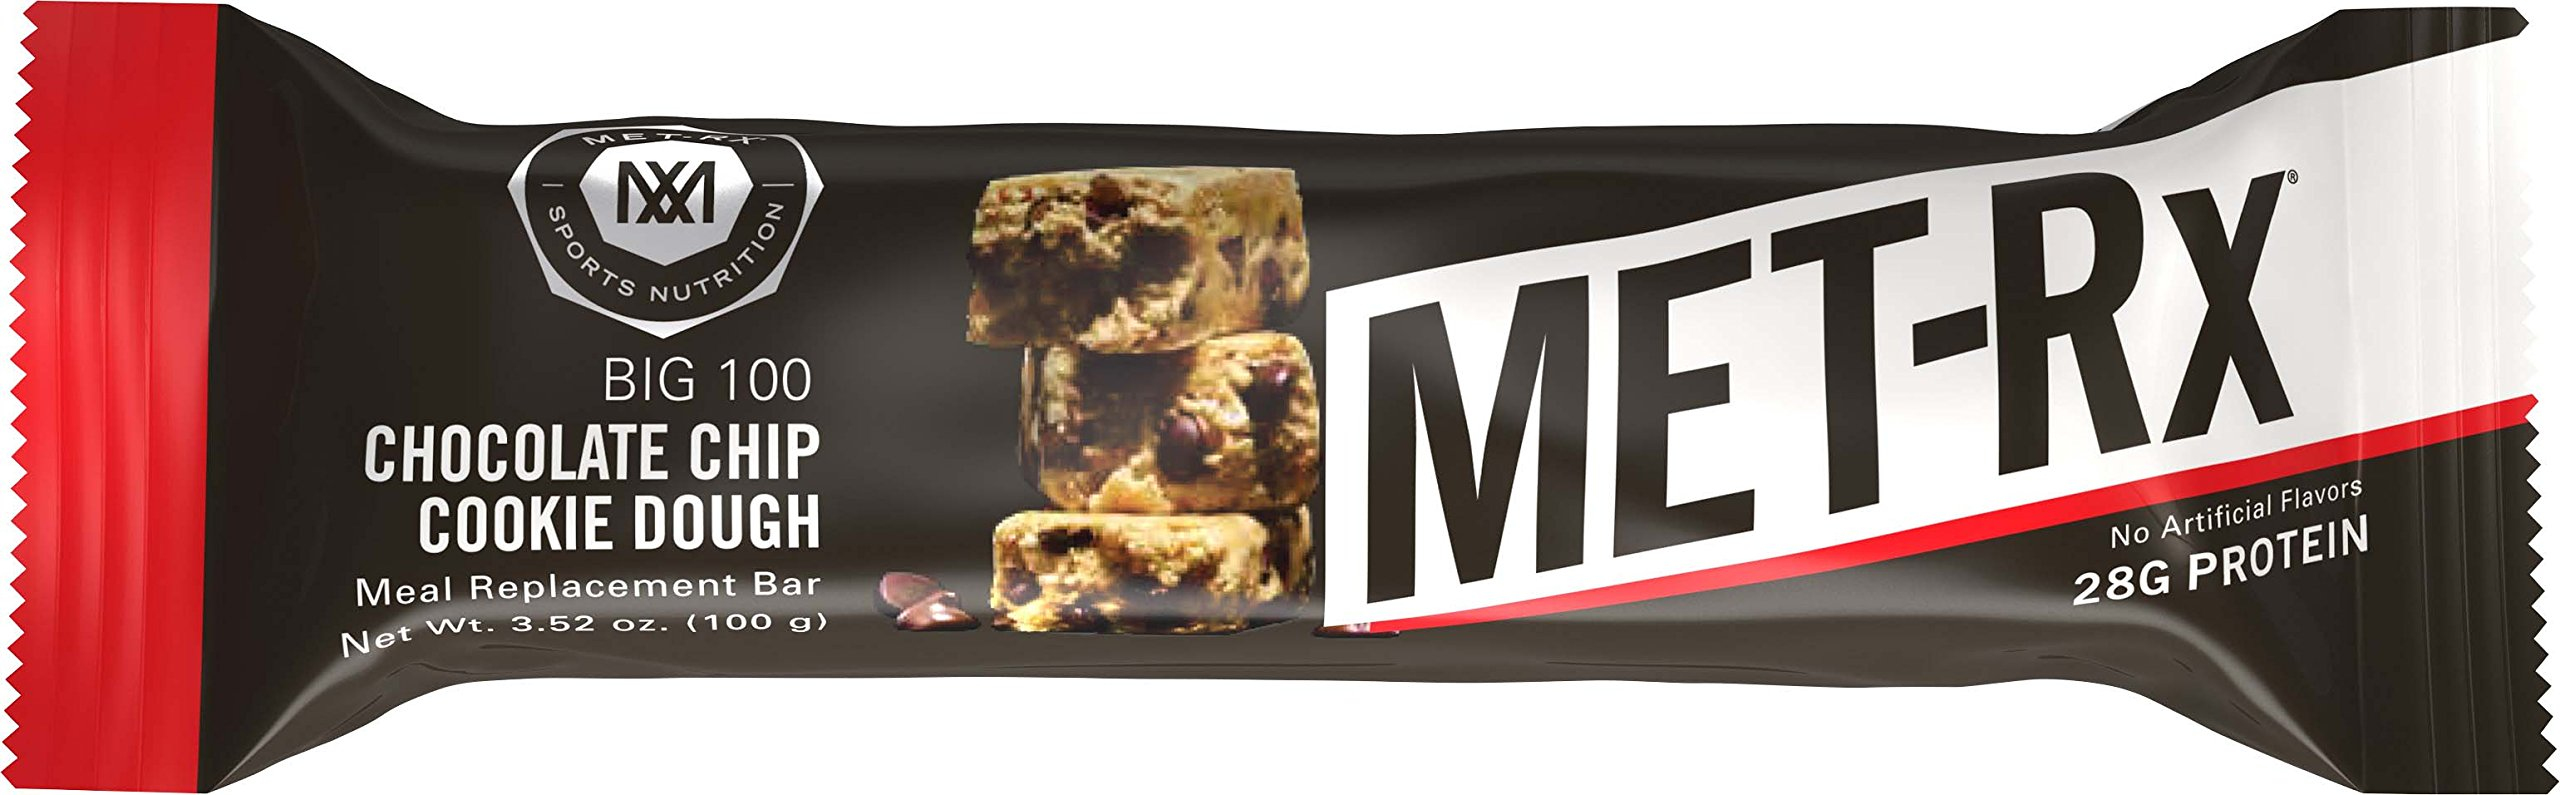 MET-Rx Big 100 Colossal Protein Bars, Great as Healthy Meal Replacement, Snack, and Help Support Energy, Gluten Free, Chocolate Chip Cookie Dough, 100 g, 9 Count